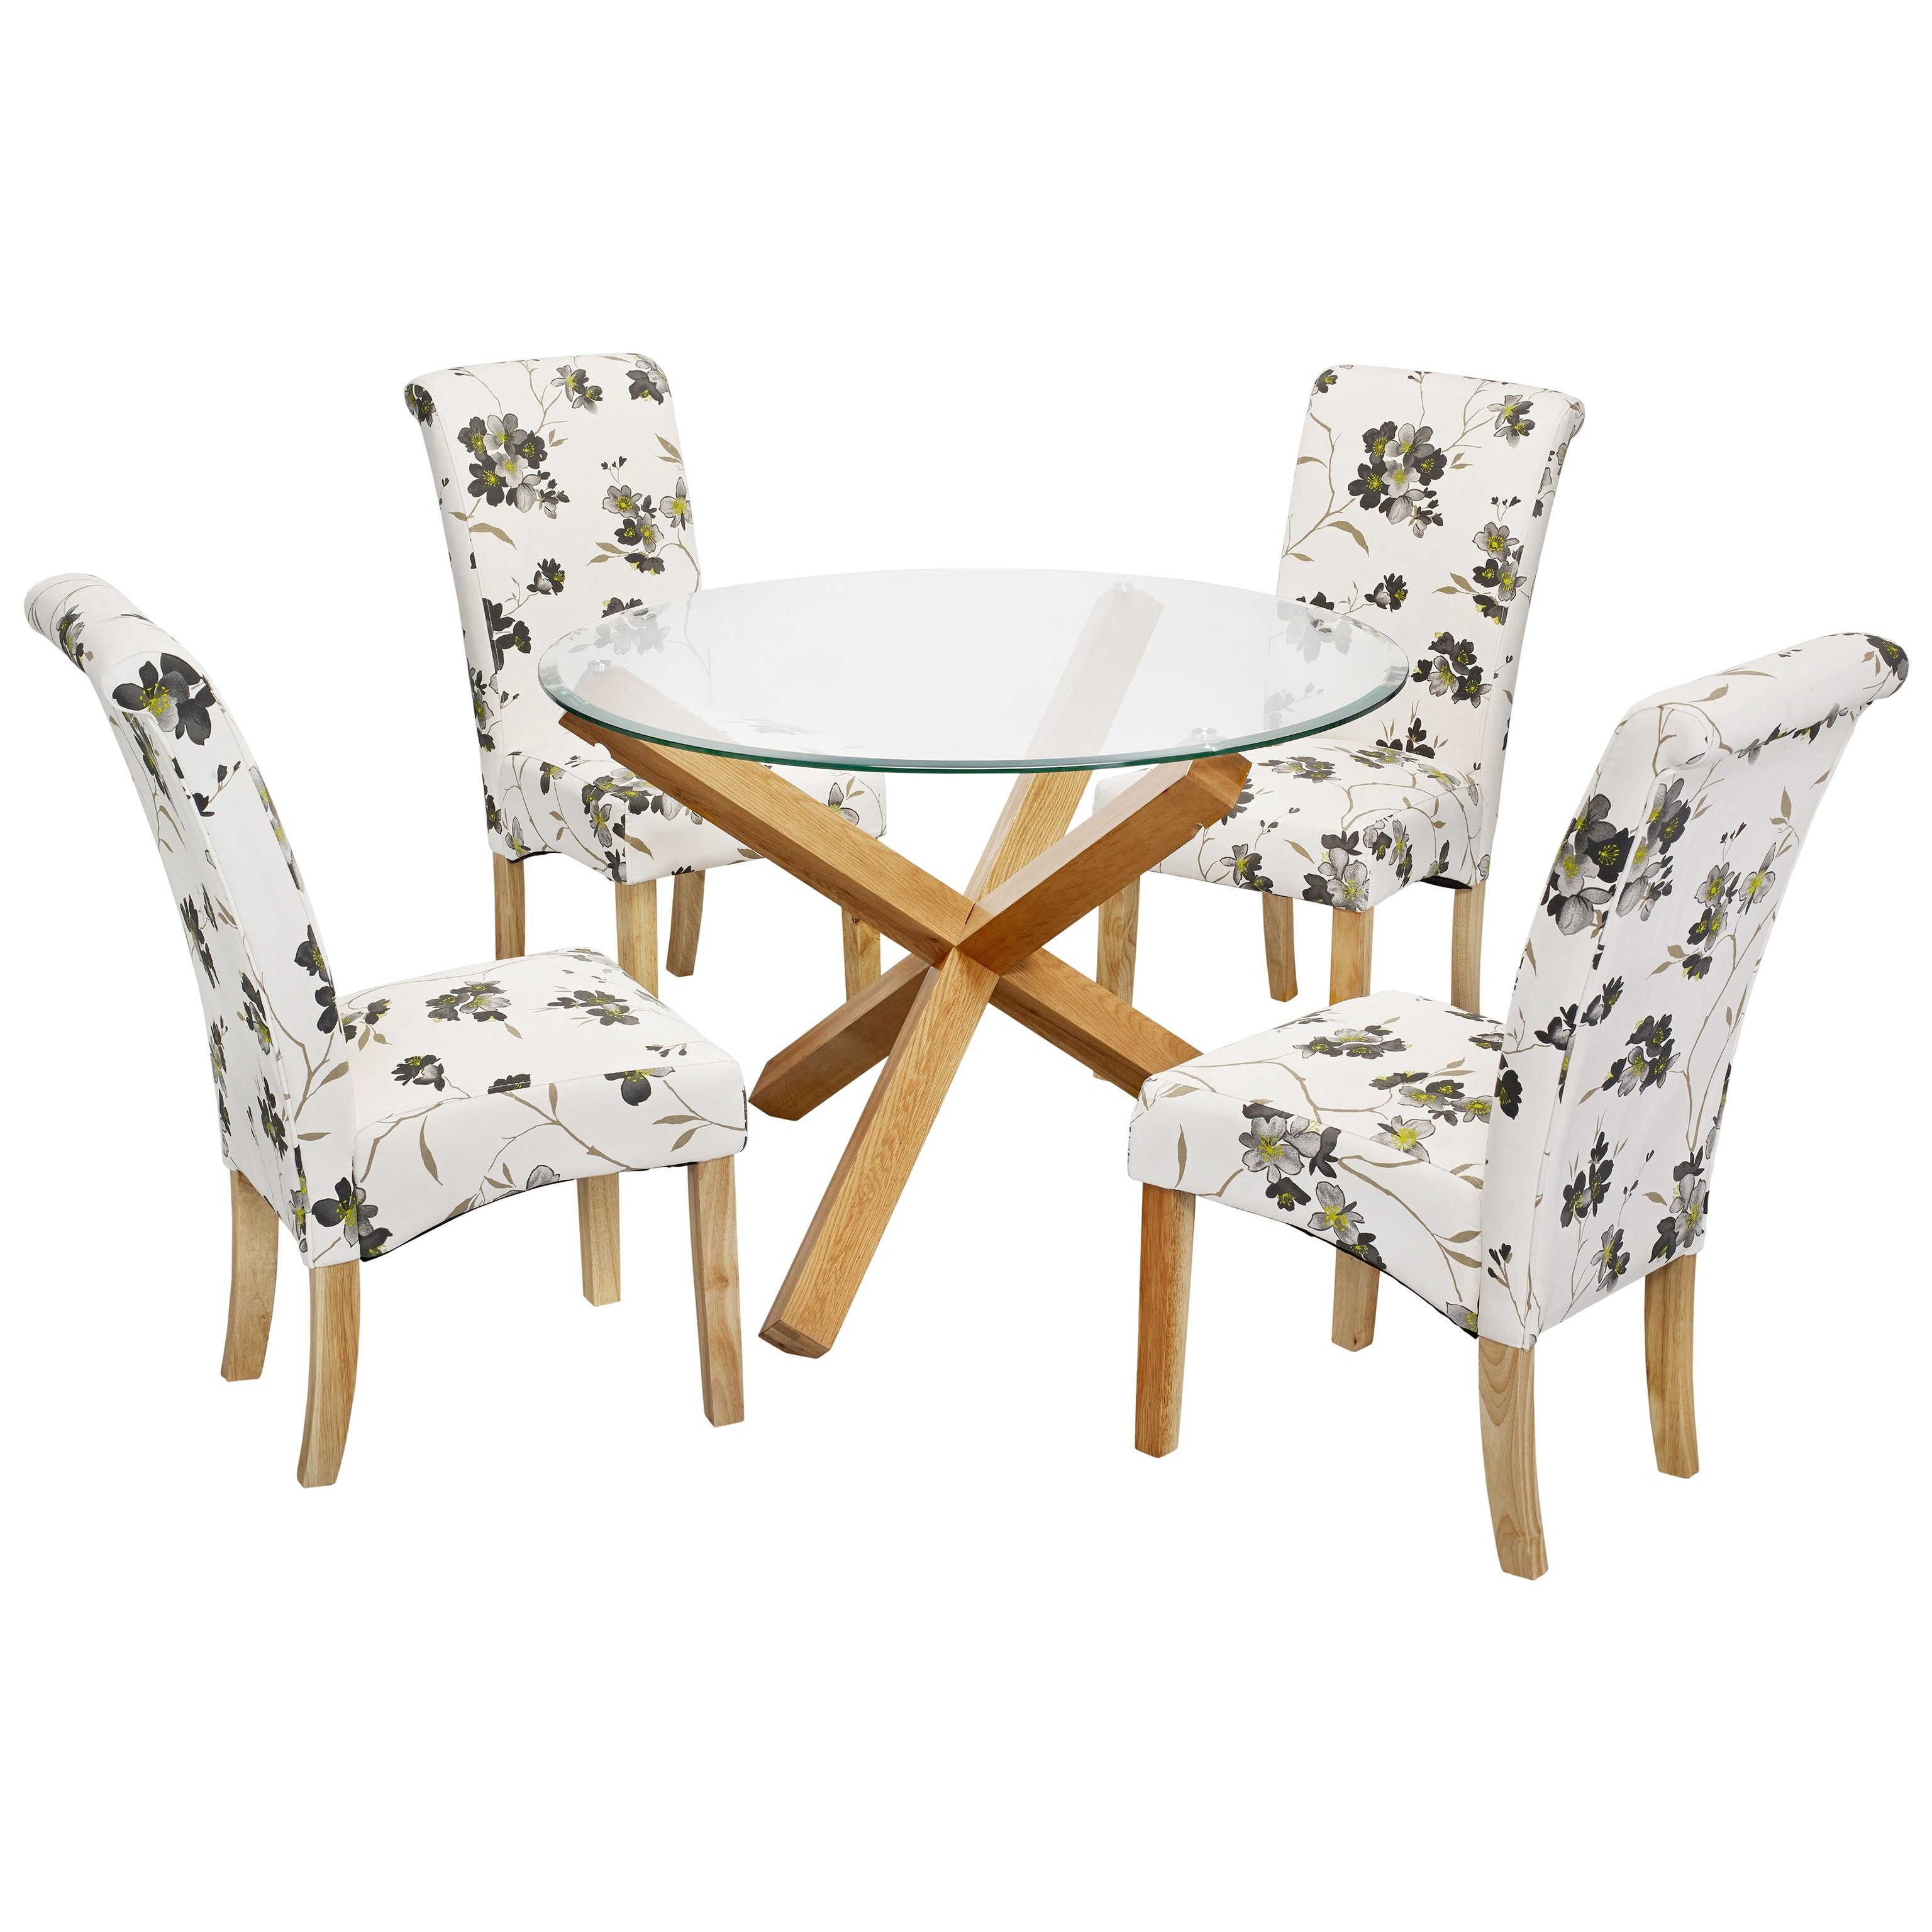 Solid Oak Glass Round Dining Table And Chair Set With 4, Round Table With Favorite Glass And Oak Dining Tables And Chairs (View 13 of 25)